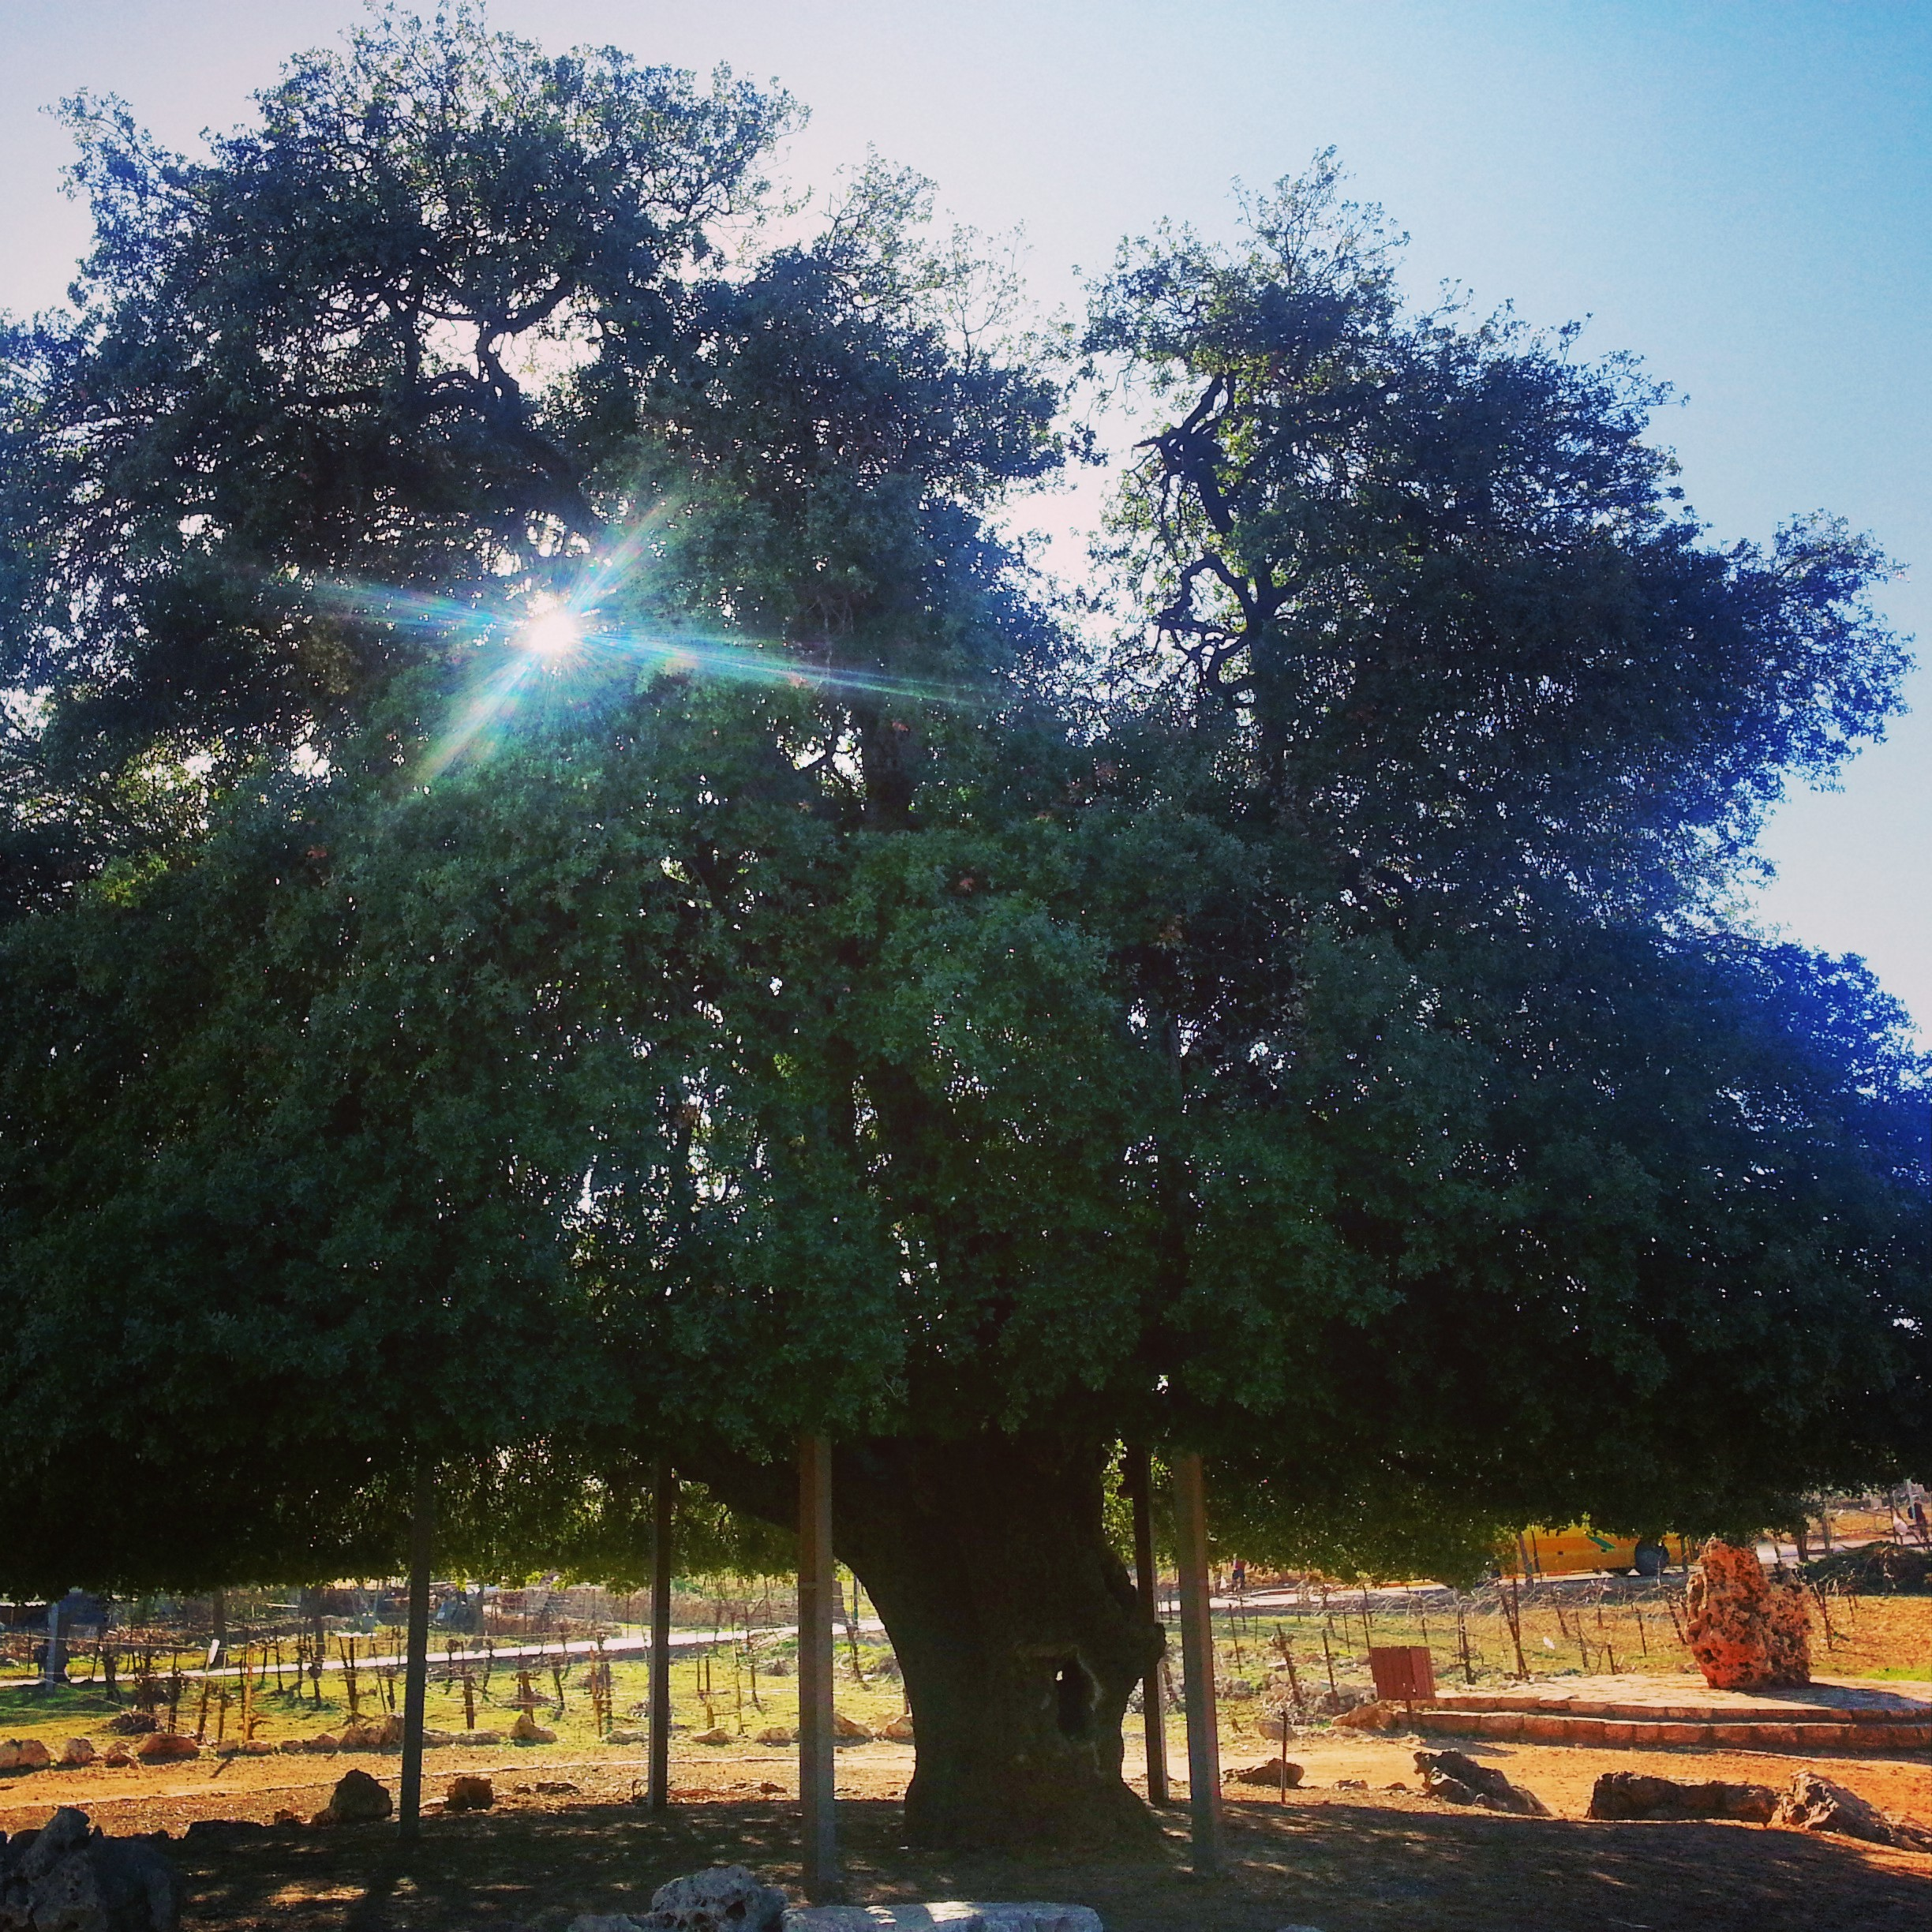 The Lone Oak next to Alon Shvut